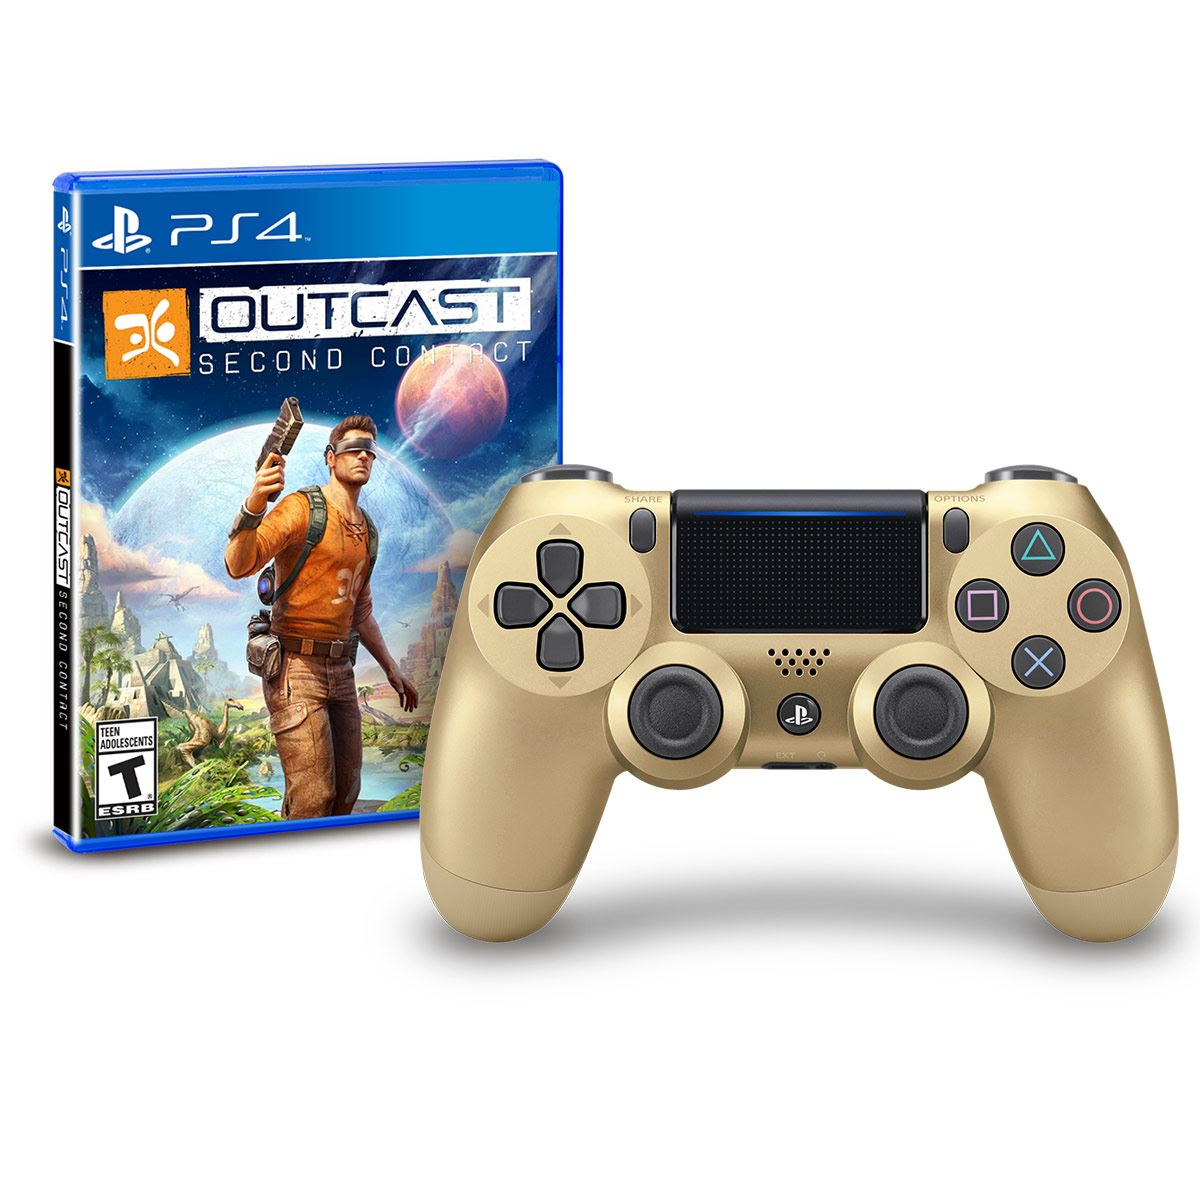 Control DS4 Gold + PS4 Outcast Second Contact